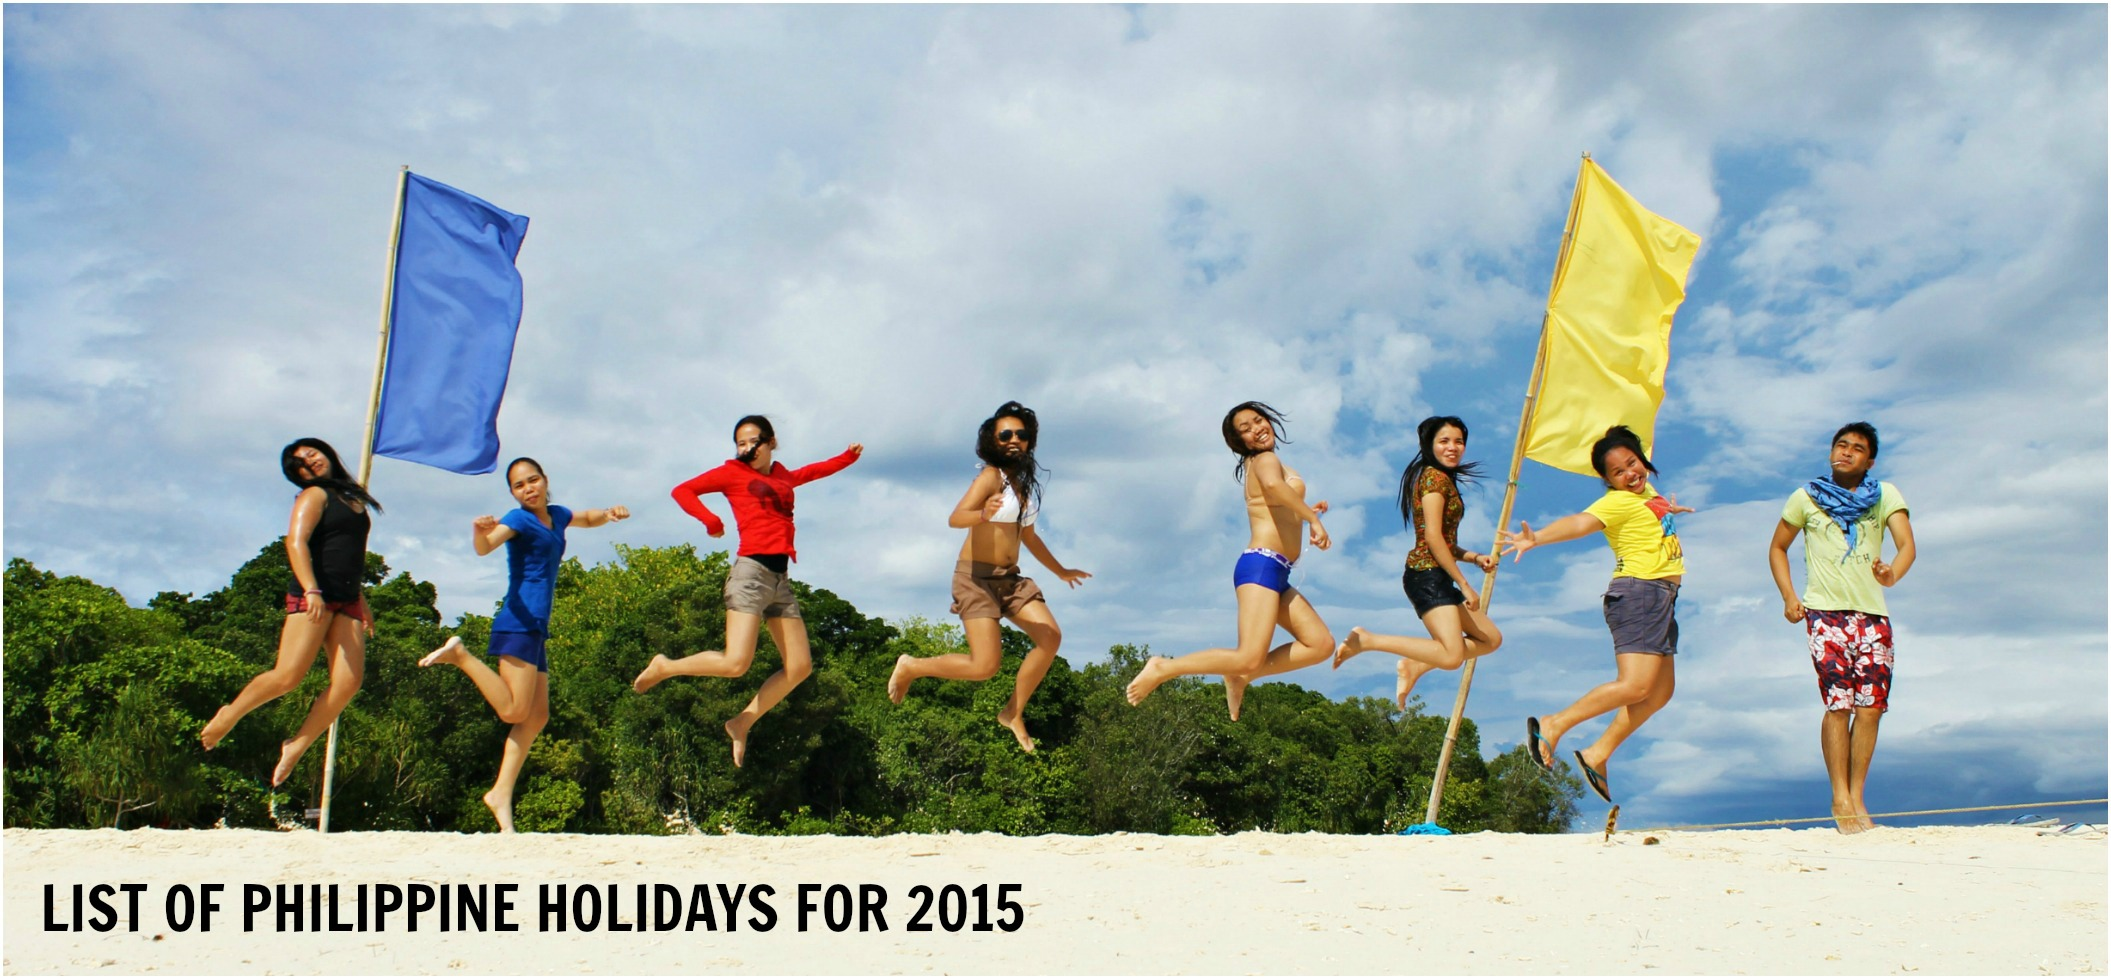 List of Philippine Holidays for 2015